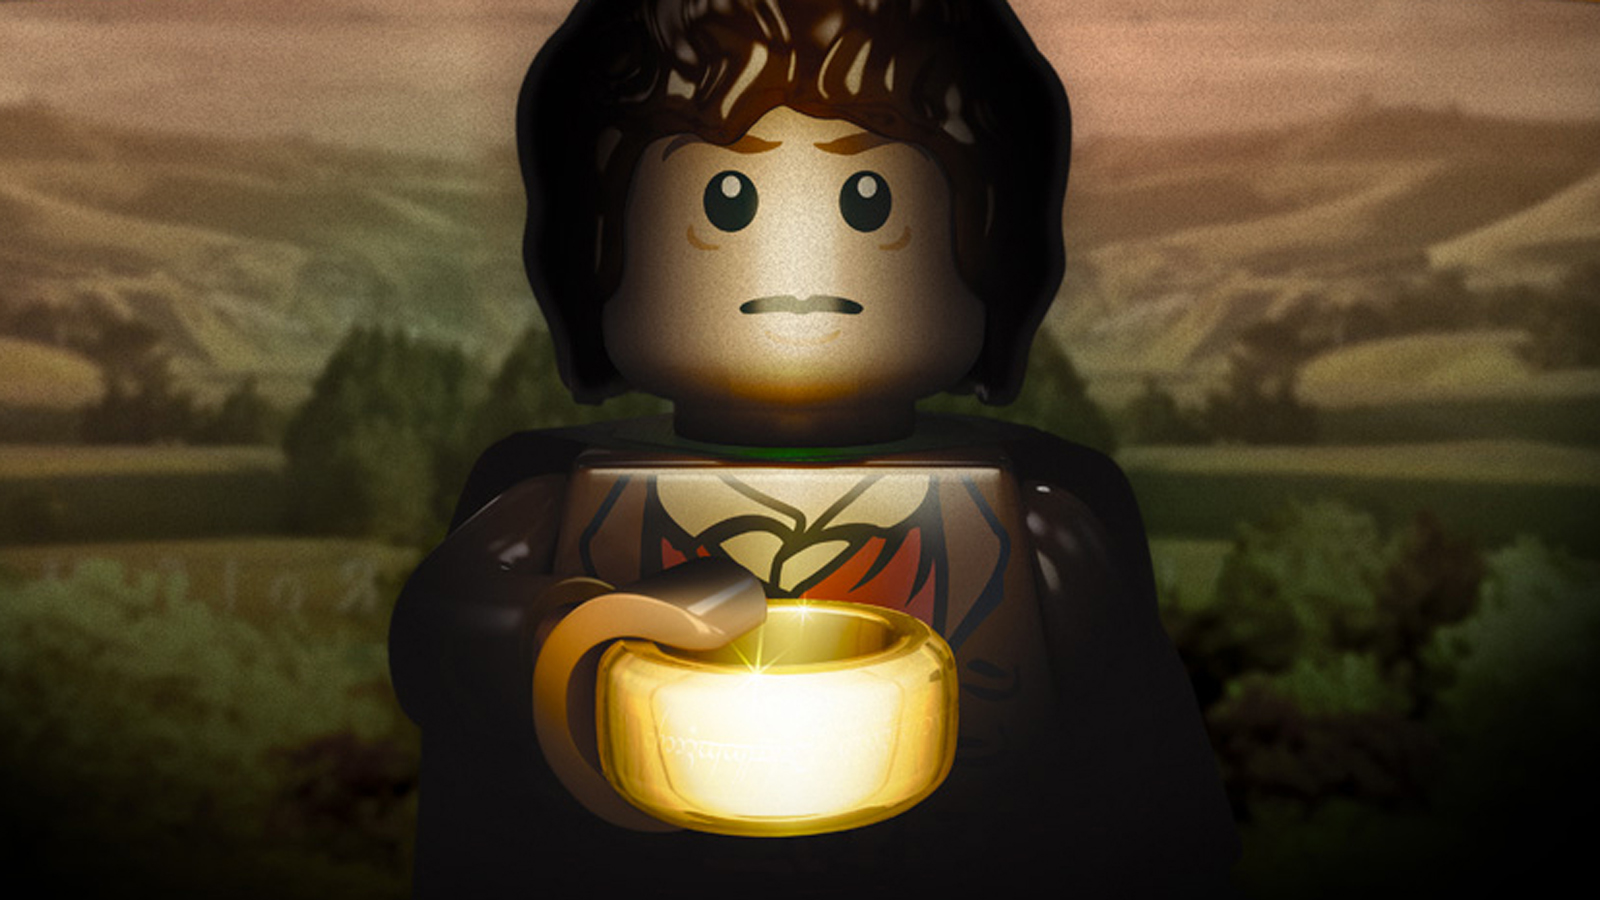 Lego Lord Of The Rings Games Delisted Ghostbusters May Follow